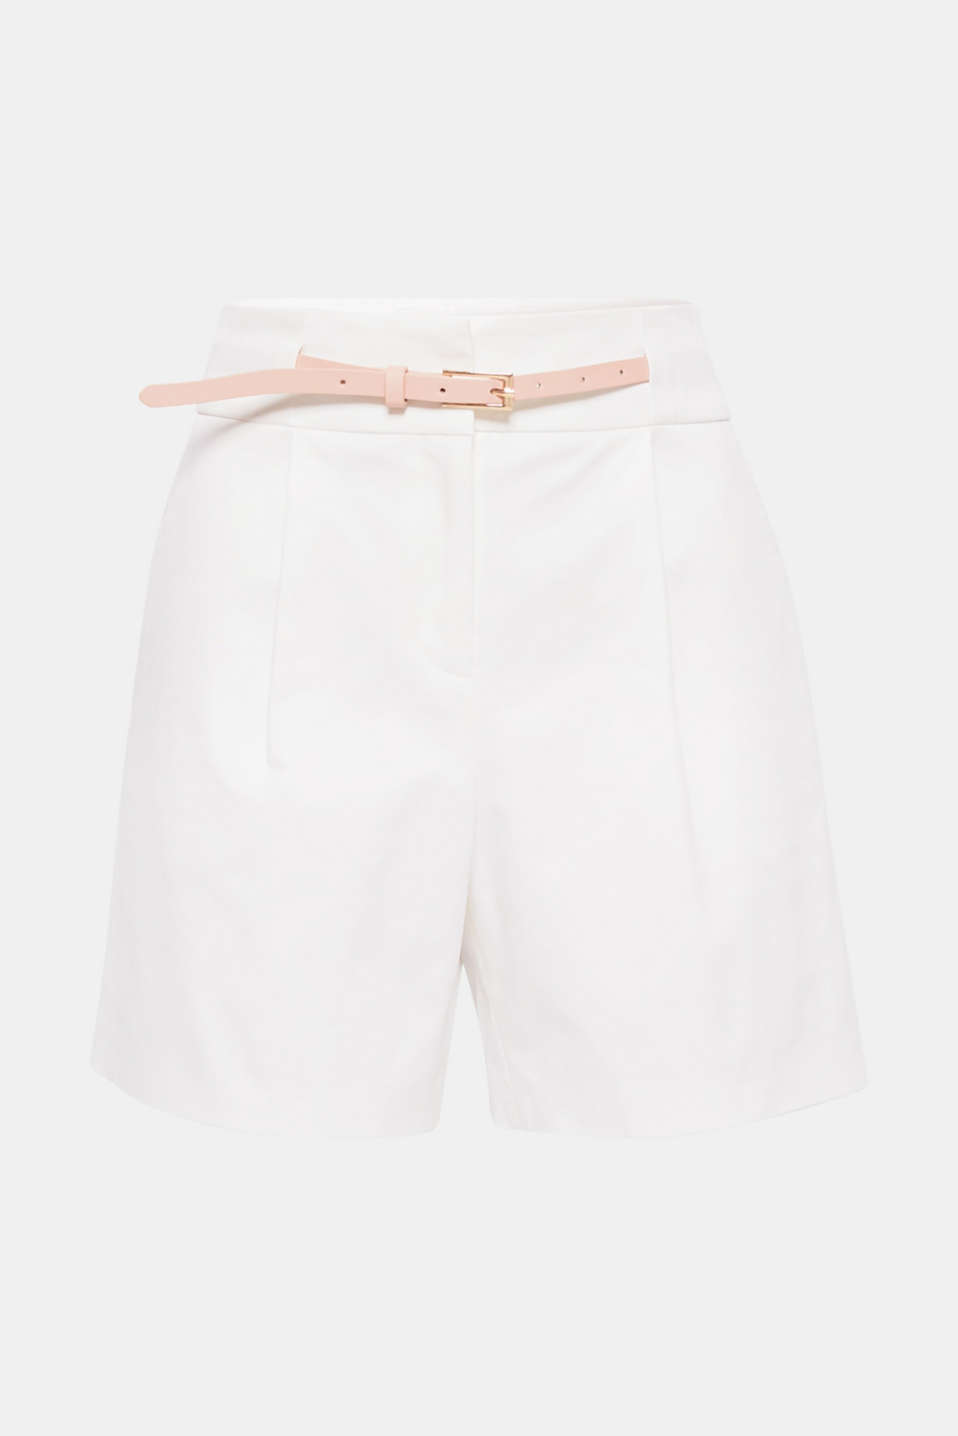 An absolute classic for stylish summer combinations: these stretch shorts featuring waist pleats and a belt are extremely versatile, bang on-trend and will give your look a unique twist.